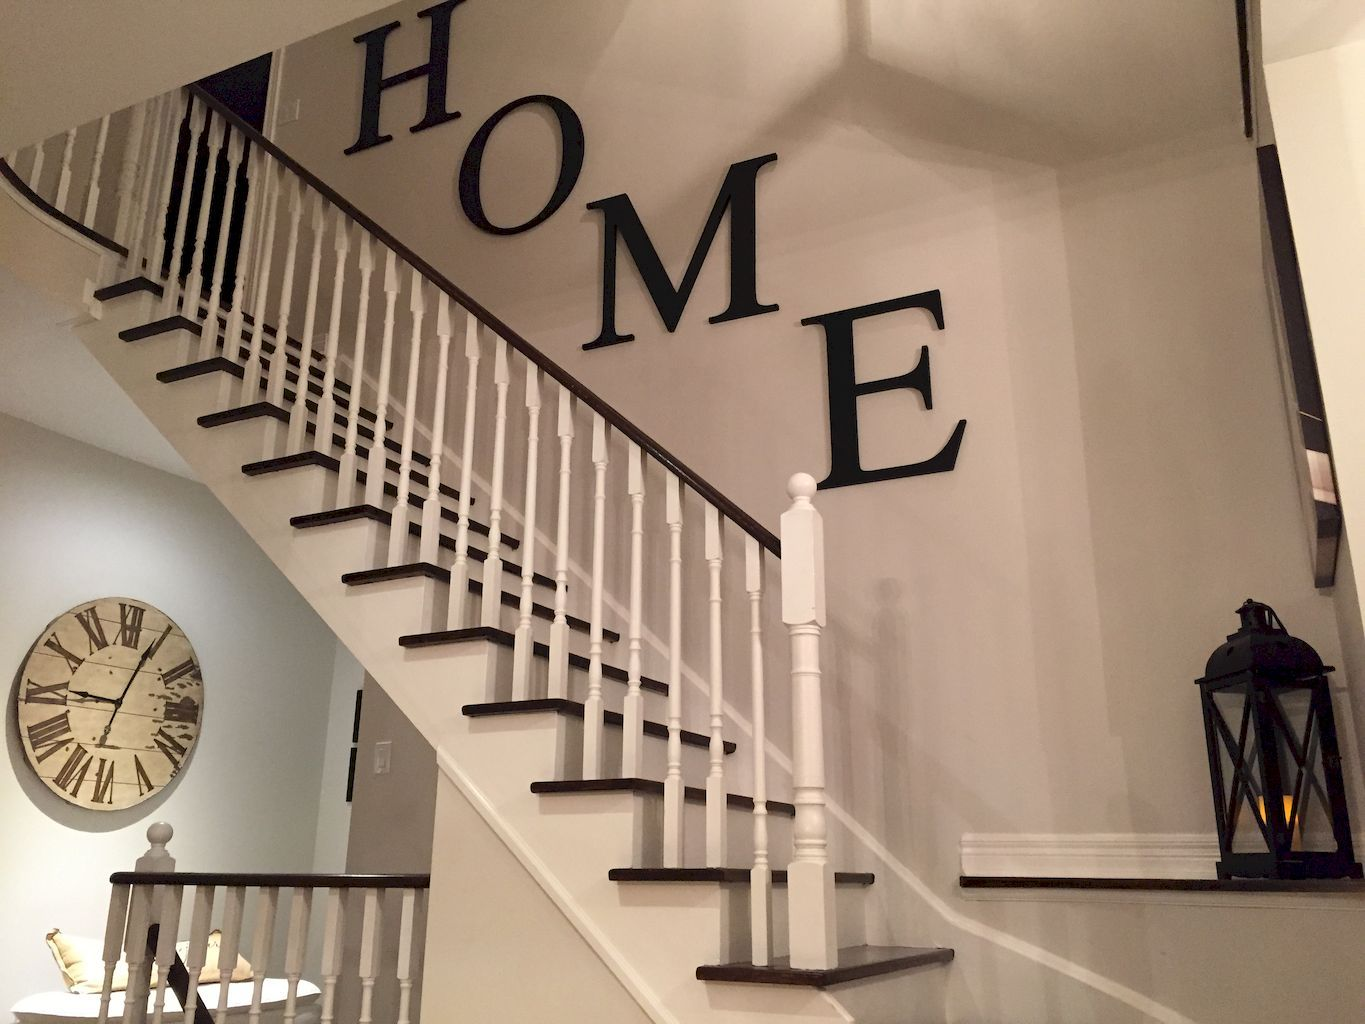 Awesome 80 Modern Farmhouse Staircase Decor Ideas Https Livingmarch Com 80 Modern Farmhouse S Staircase Wall Decor Stair Wall Decor Decorating Stairway Walls